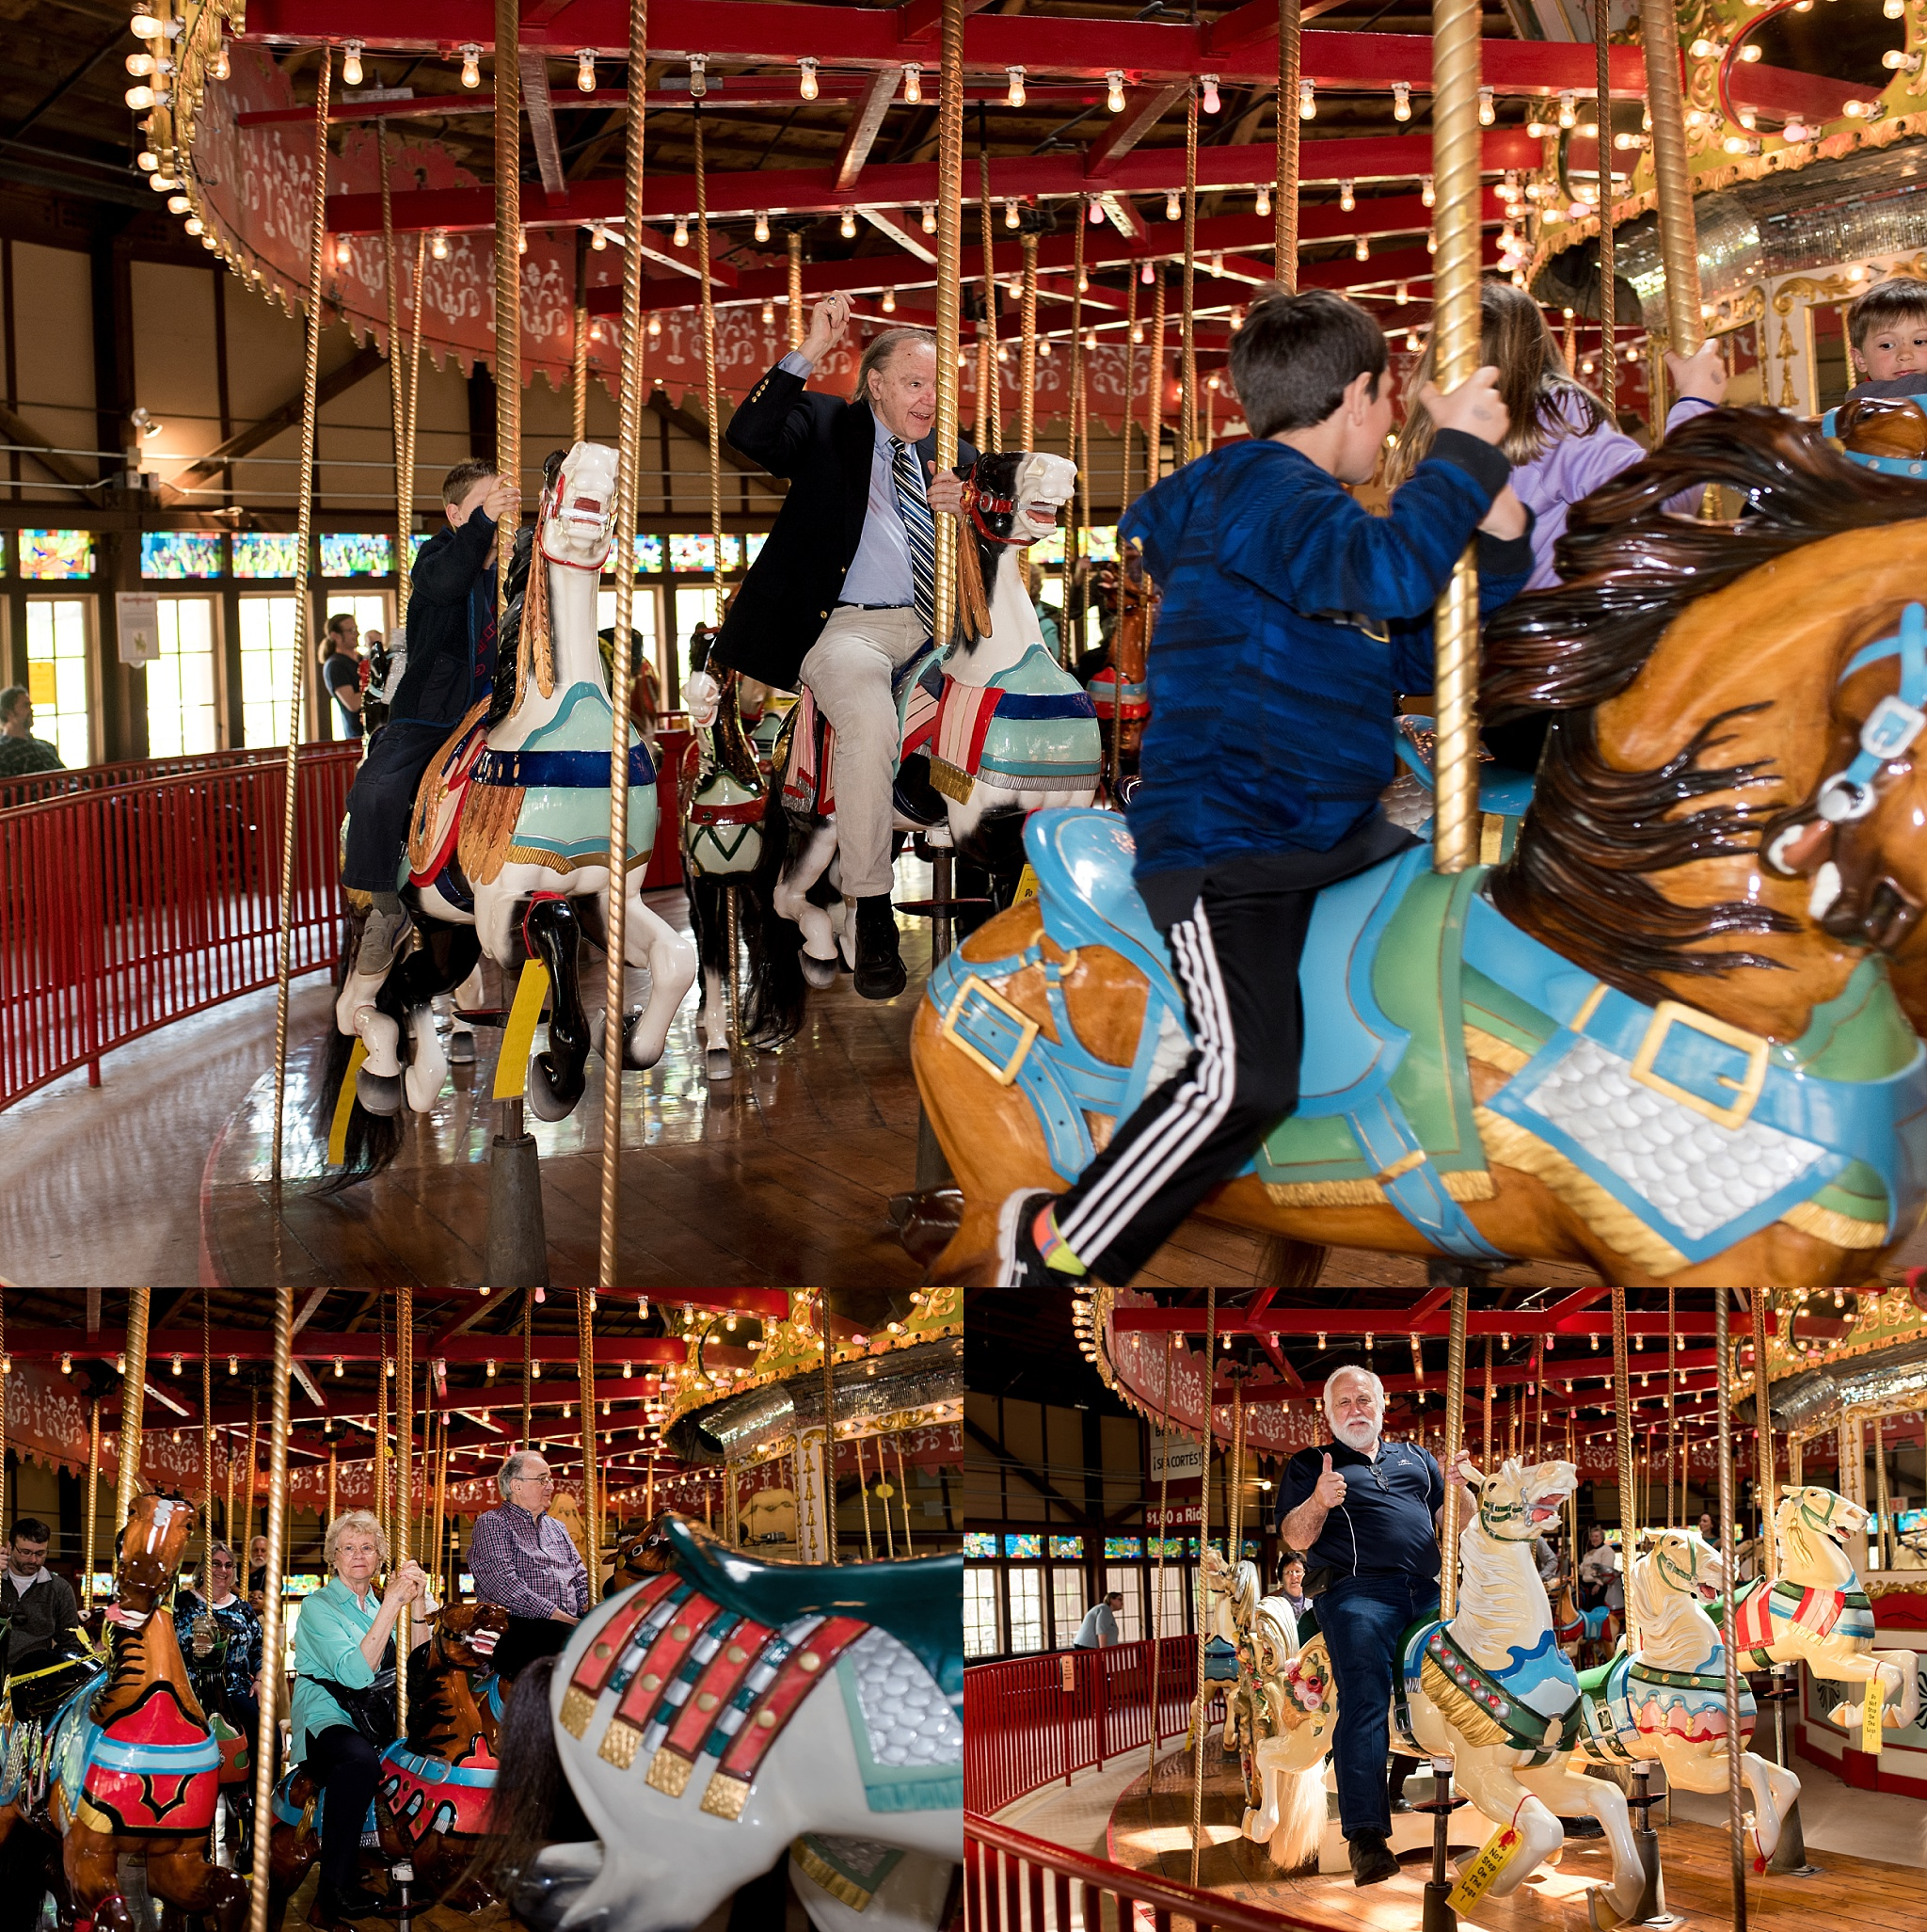 bushnell park carousel in hartford connecticut